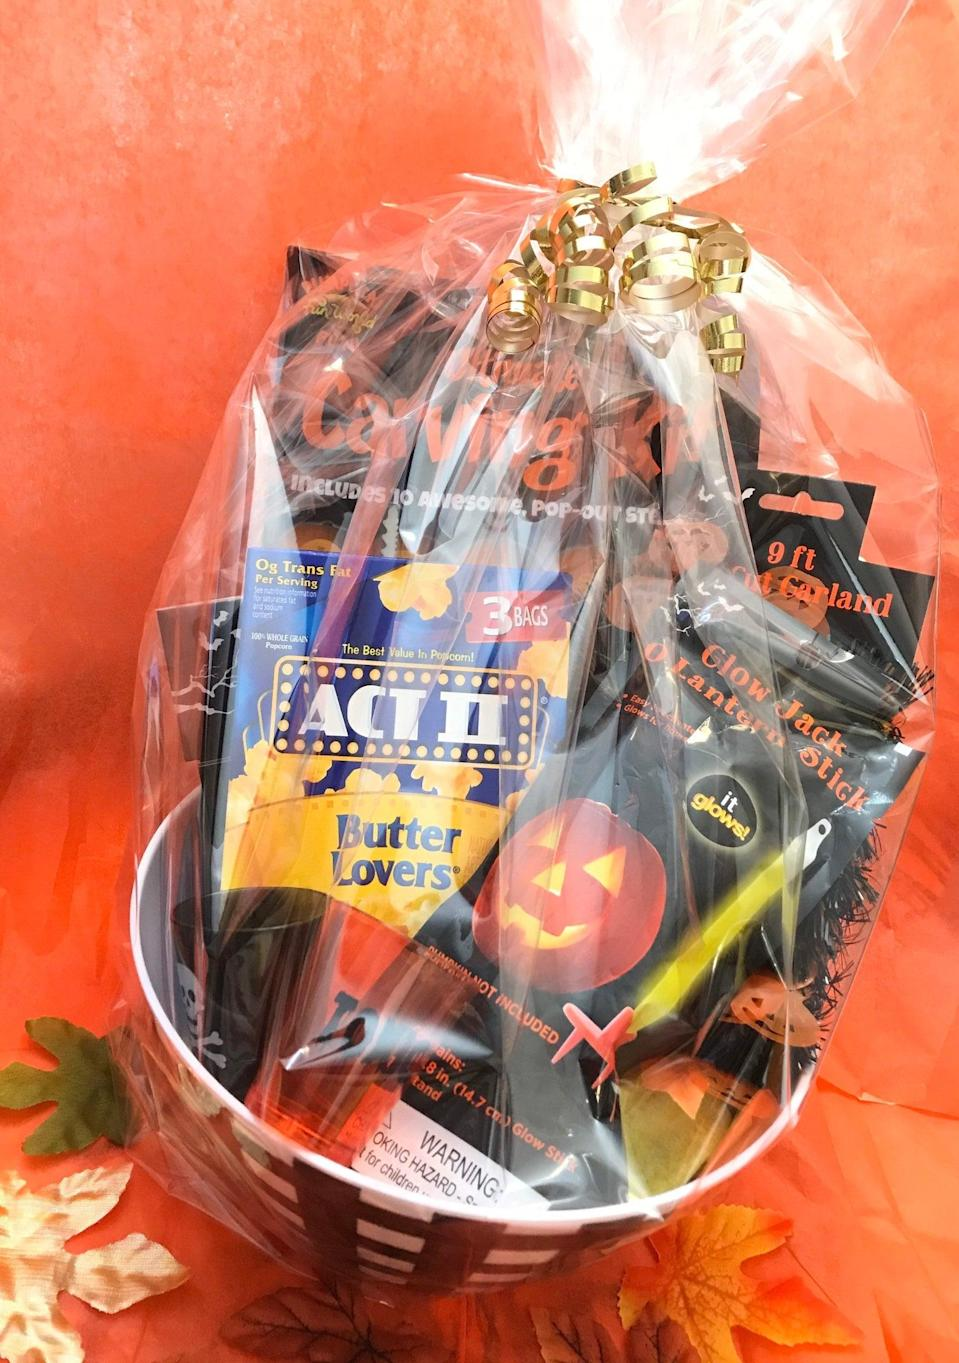 """<h2>Halloween Party Pumpkin Carving Gift Basket Set</h2> <br> <strong>Best For: The Gift Giver</strong> <br>If you know someone who LIVES for all things Halloween, then this gift basket is for them. It comes with a basic carving kit, Halloween-shot glass, popcorn, and more! <br> <br> <em>Shop</em> <strong><em><a href=""""https://www.etsy.com/shop/EARTHWINDAIRFIRE"""" rel=""""nofollow noopener"""" target=""""_blank"""" data-ylk=""""slk:EARTHWINDAIRFIRE"""" class=""""link rapid-noclick-resp"""">EARTHWINDAIRFIRE</a></em></strong> <br> <br> <strong>EARTHWINDAIRFIRE</strong> Halloween Party Pumpkin Carving Gift Basket Set, $, available at <a href=""""https://go.skimresources.com/?id=30283X879131&url=https%3A%2F%2Fwww.etsy.com%2Flisting%2F863757098%2Fhalloween-party-pumpkin-carving-gift"""" rel=""""nofollow noopener"""" target=""""_blank"""" data-ylk=""""slk:Etsy"""" class=""""link rapid-noclick-resp"""">Etsy</a>"""